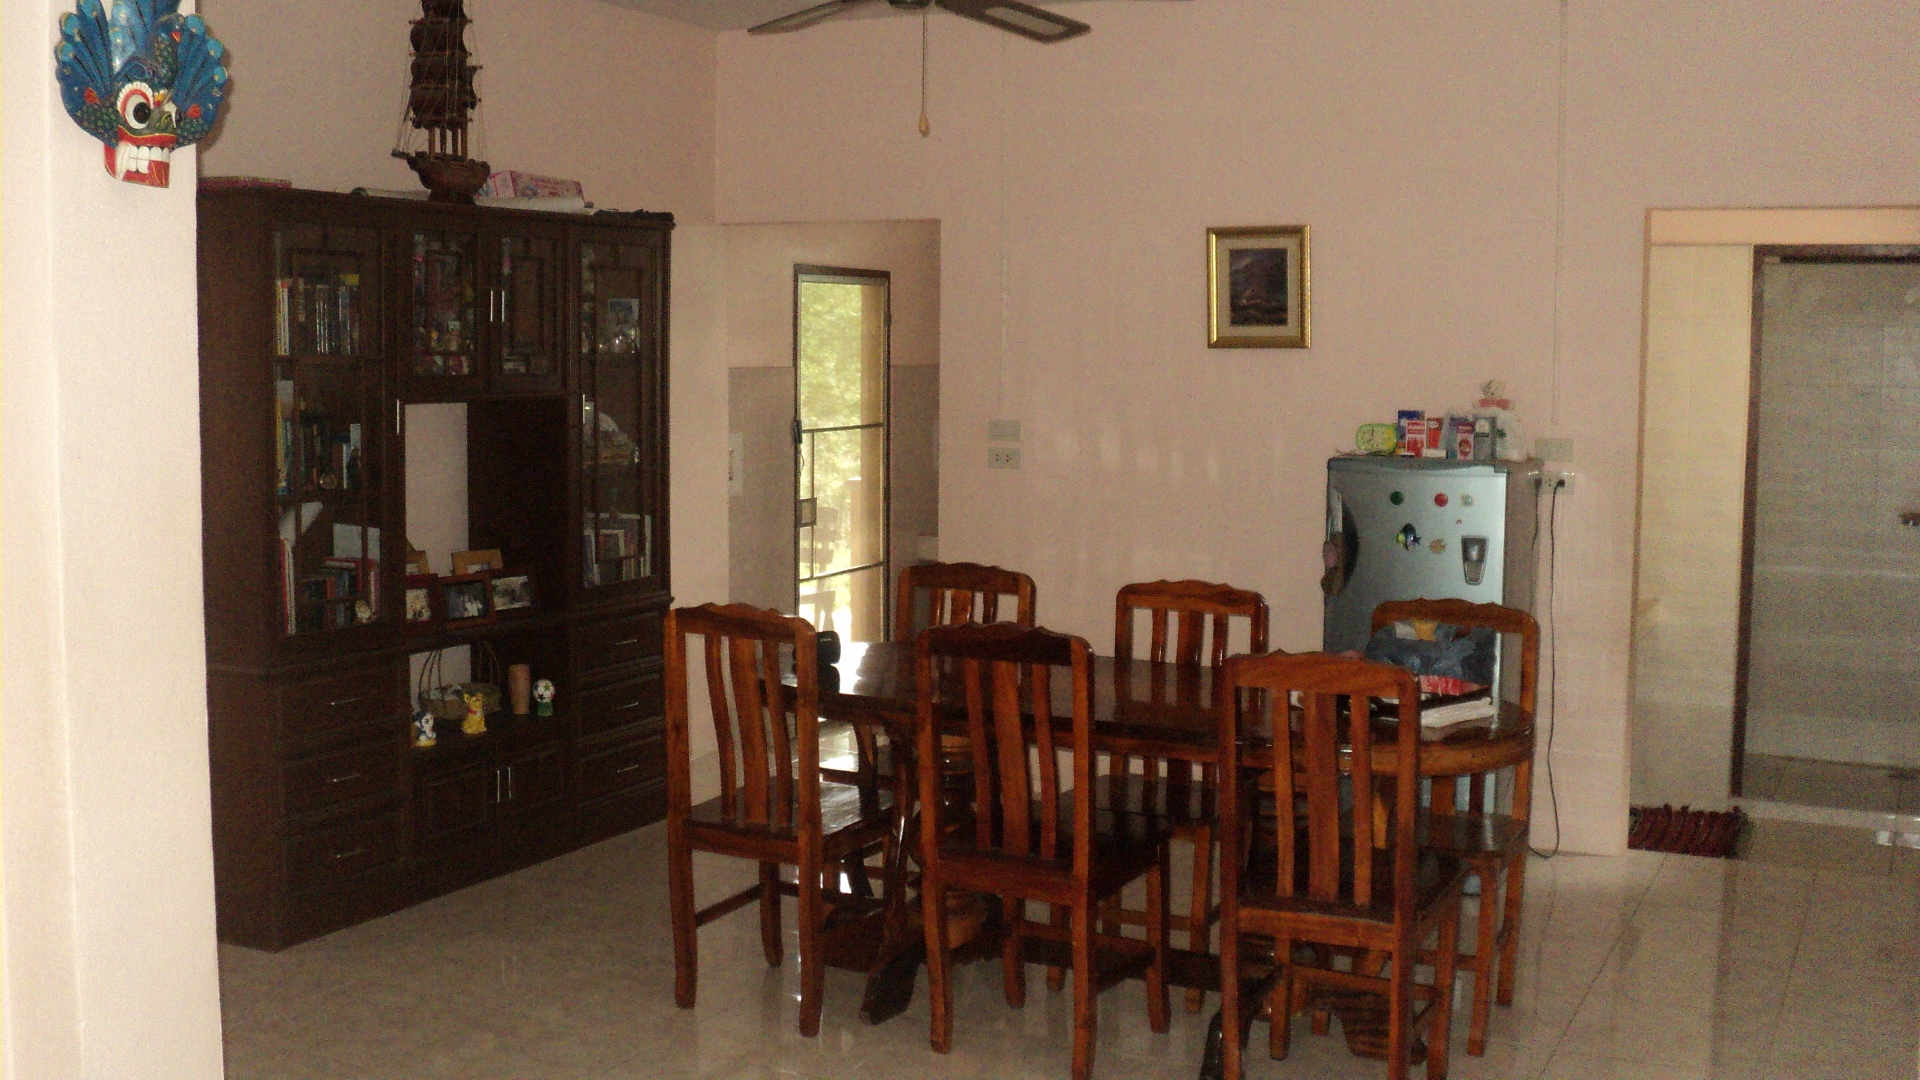 House for sale in Ban Nong Yao (Cha-Am);Soi 4